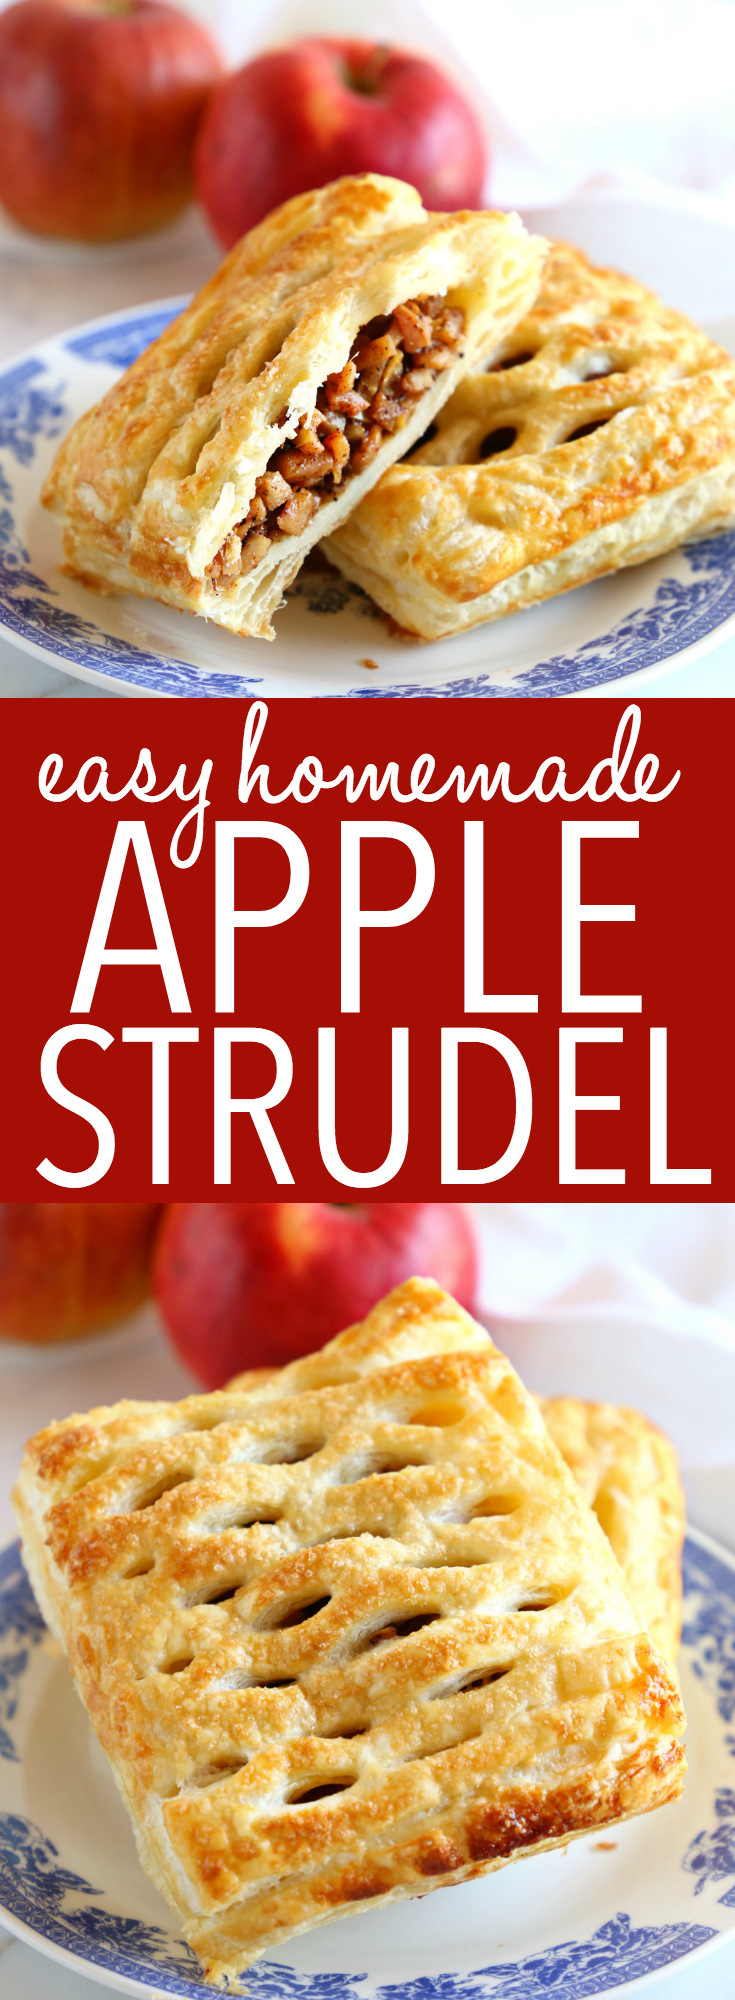 This Easy Homemade Apple Strudel is the perfect easy homemade pastry treat that's great for breakfast, dessert or a snack! It's SO easy to make at home and perfect for apple season!! Recipe from thebusybaker.ca! #apple #apples #strudel #streudel #dessert #snack #breakfast #brunch #pastry #danish #homemade #puffpastry #decadent #seasonal #fall #harvest #autumn #comfortfood #recipe